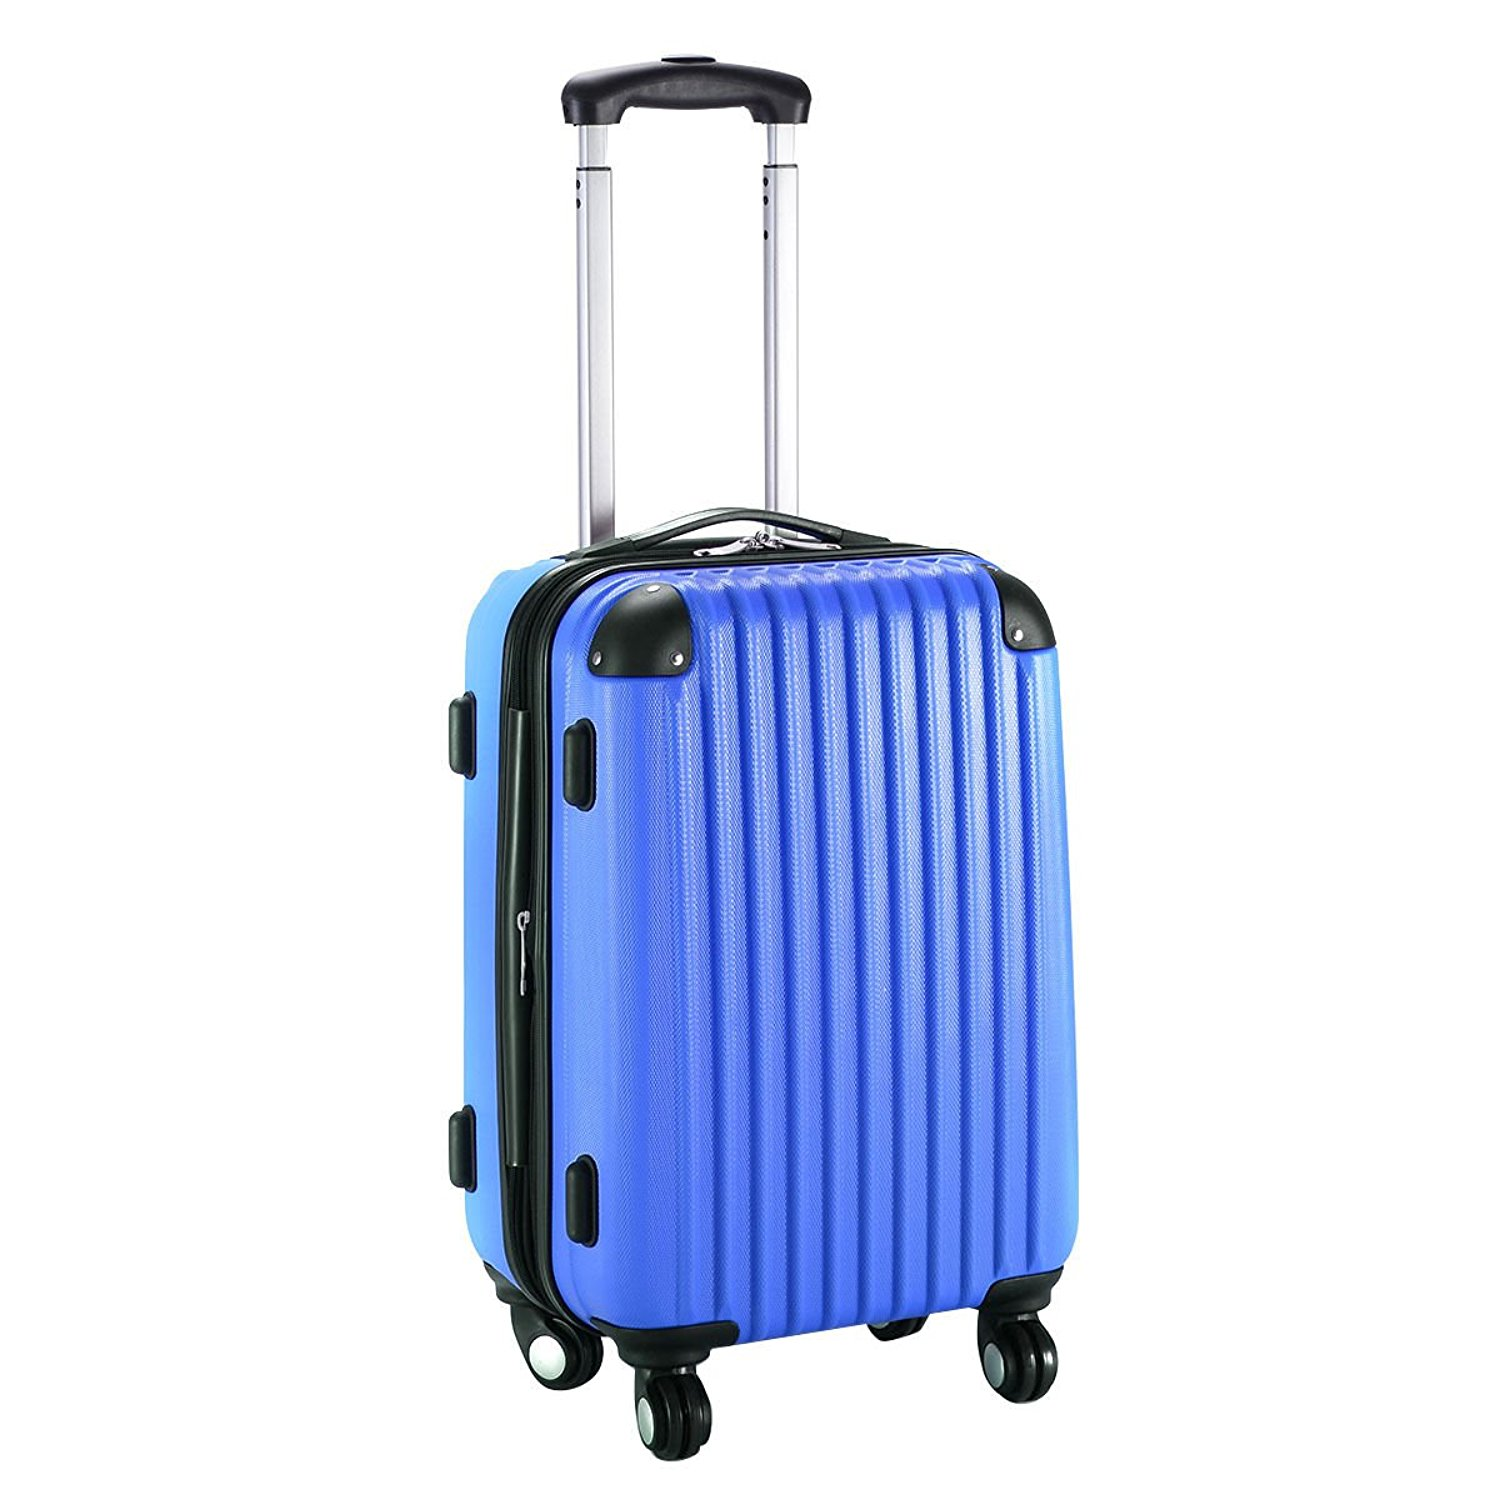 Cheap Navy Blue Suitcase Find Deals On Line At Corner Classic Lightweight Duffel Get Quotations 20 Hardshell Luggage Trolley Travel Multi Directional Wheels Rolling